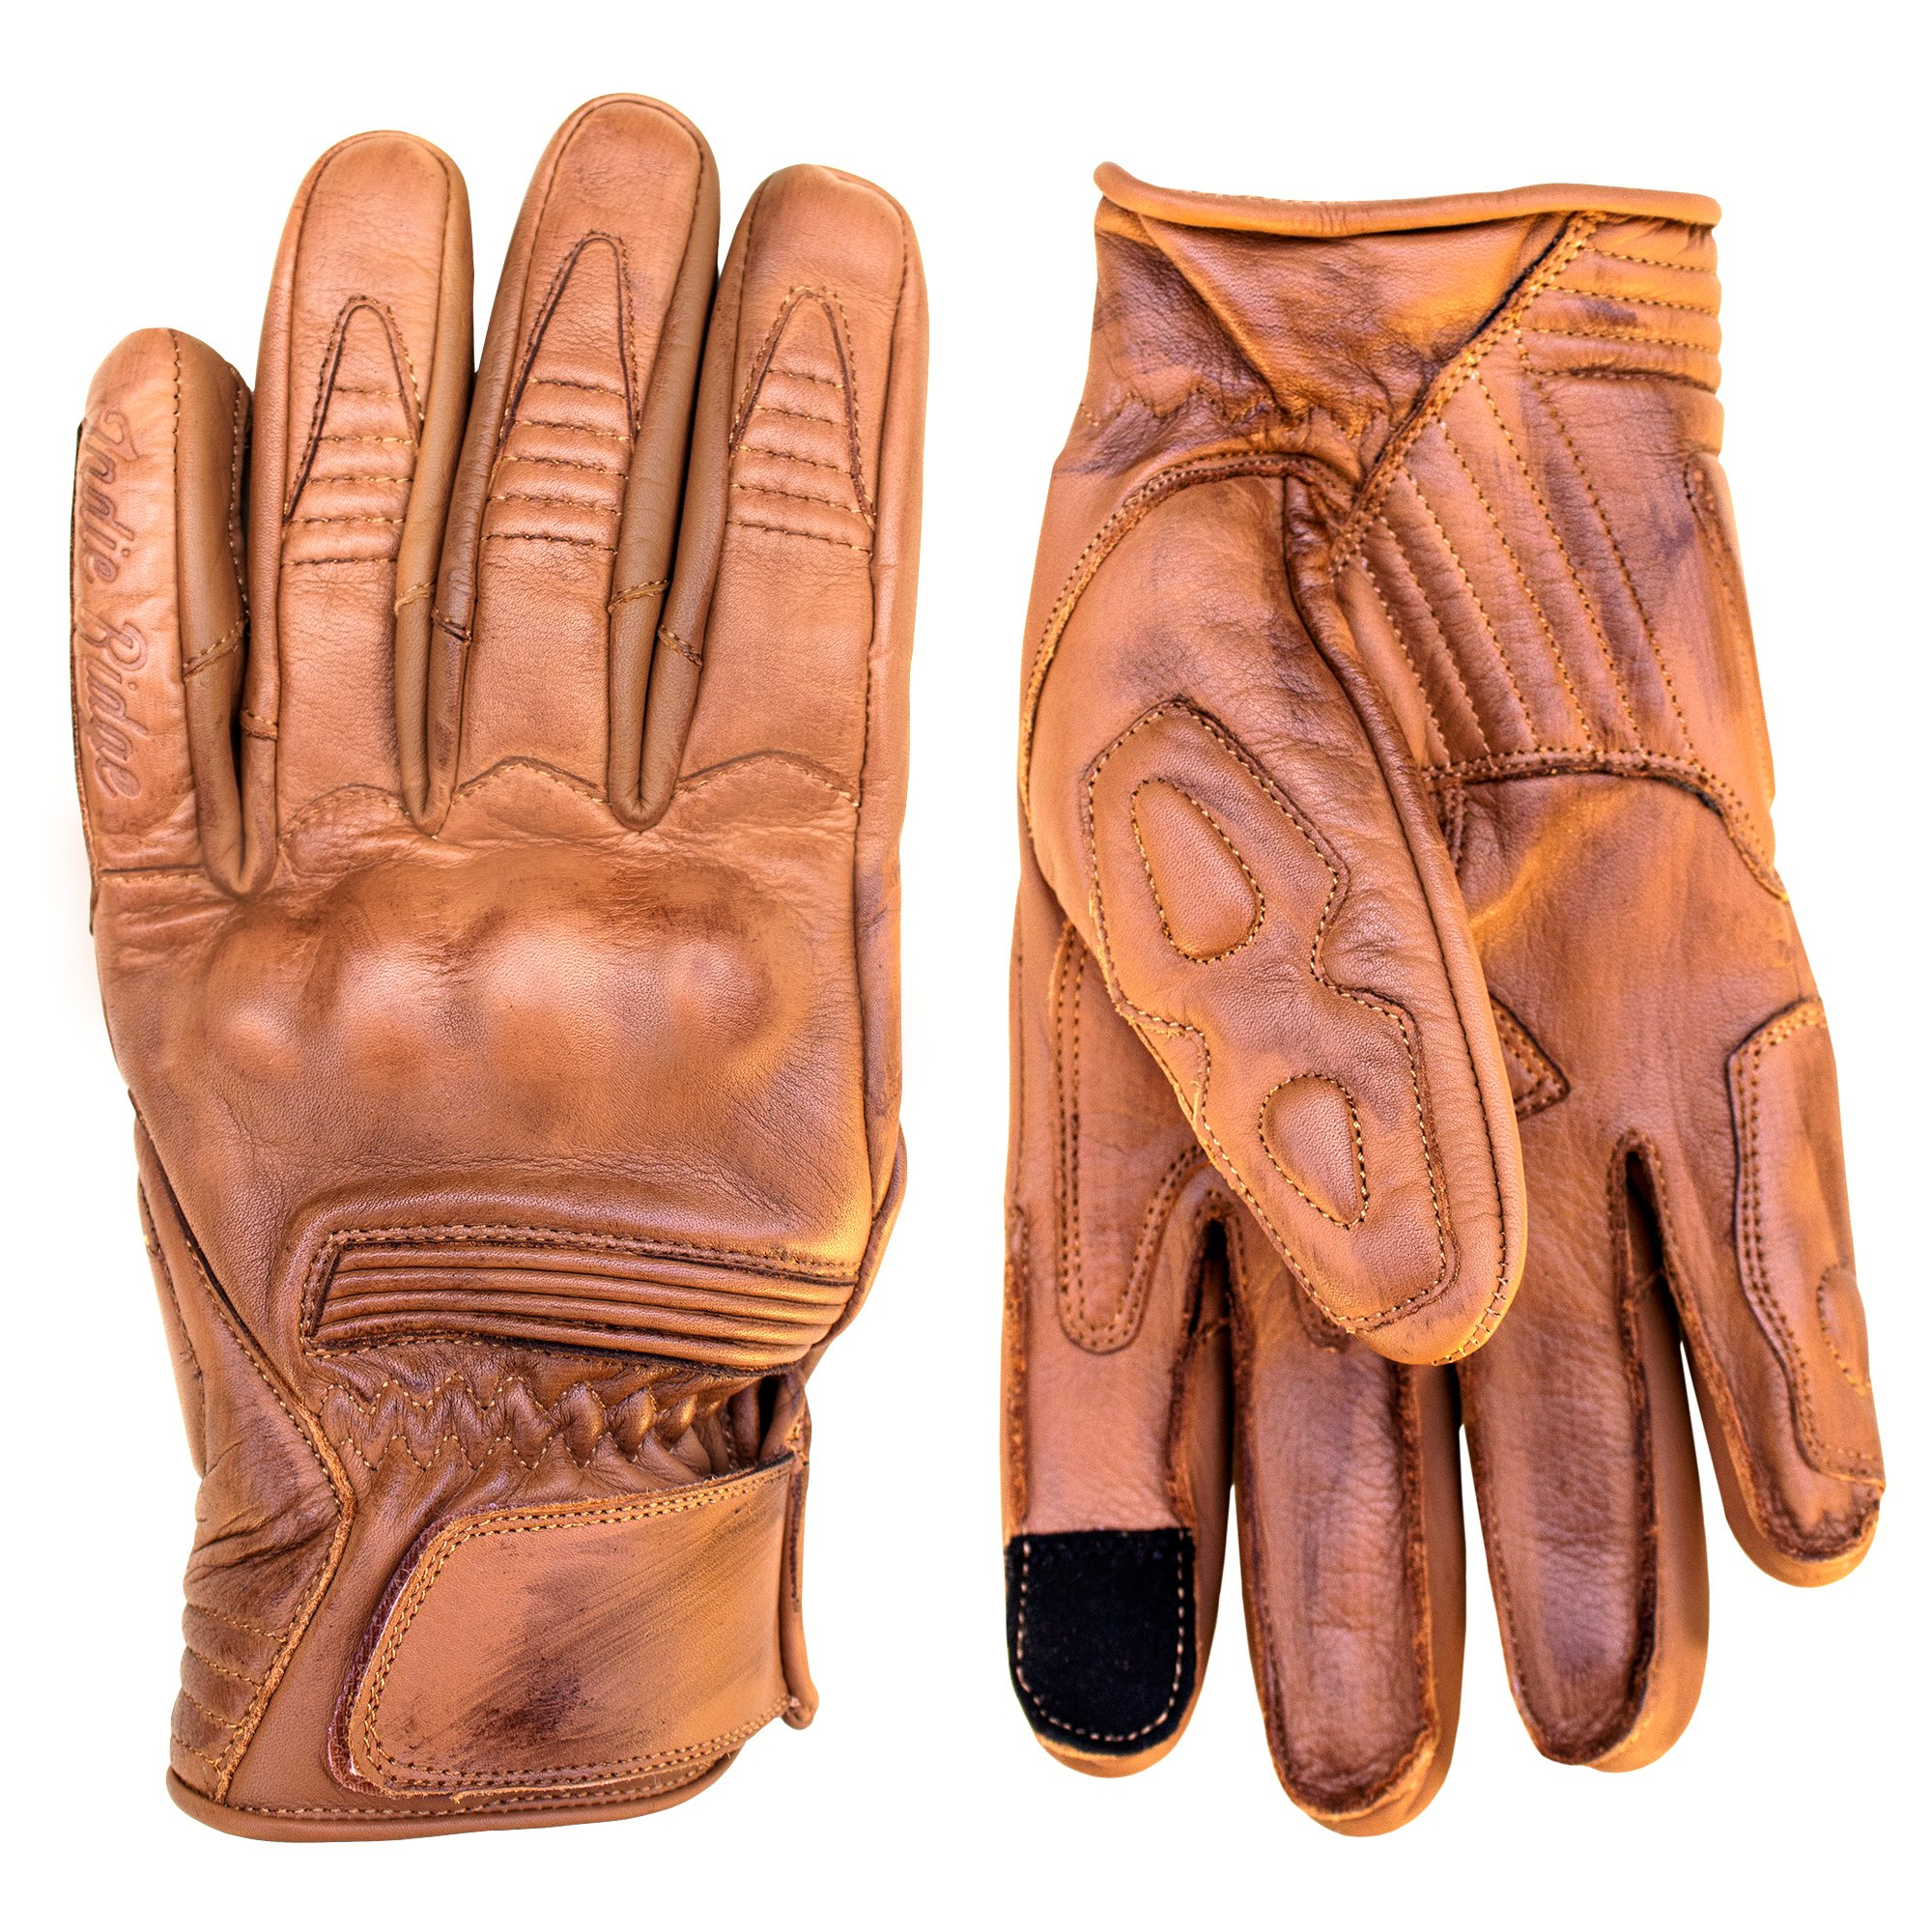 Premium Leather Motorcycle Gloves (Camel) Cool, Comfortable Riding Protection, Cafe Racer, Half Gauntlet